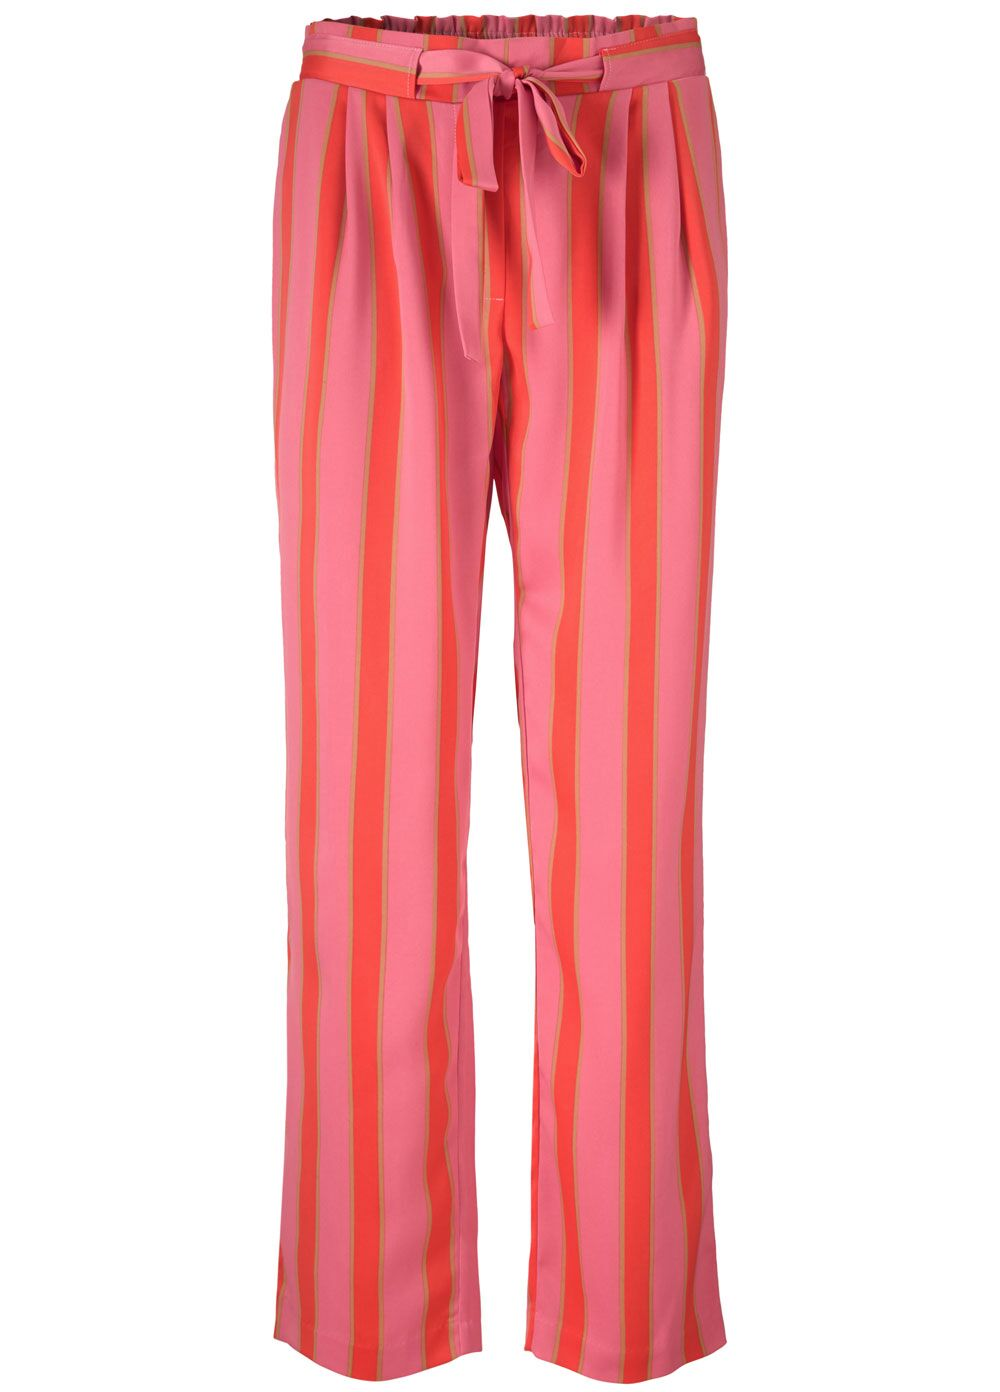 Nadine Print Pants - Regency Stripe